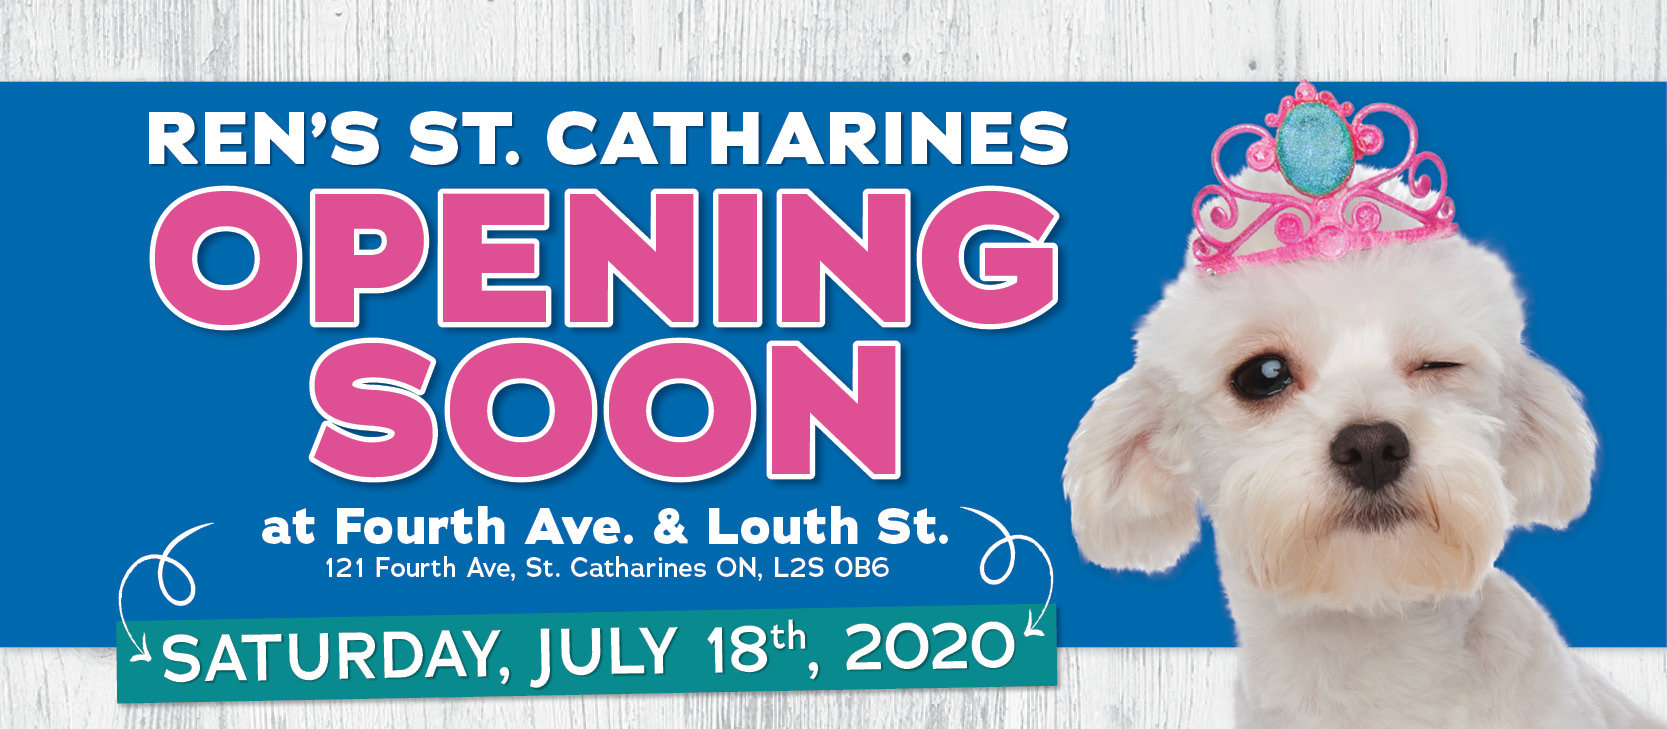 St. Catharines Location Opening July 18!